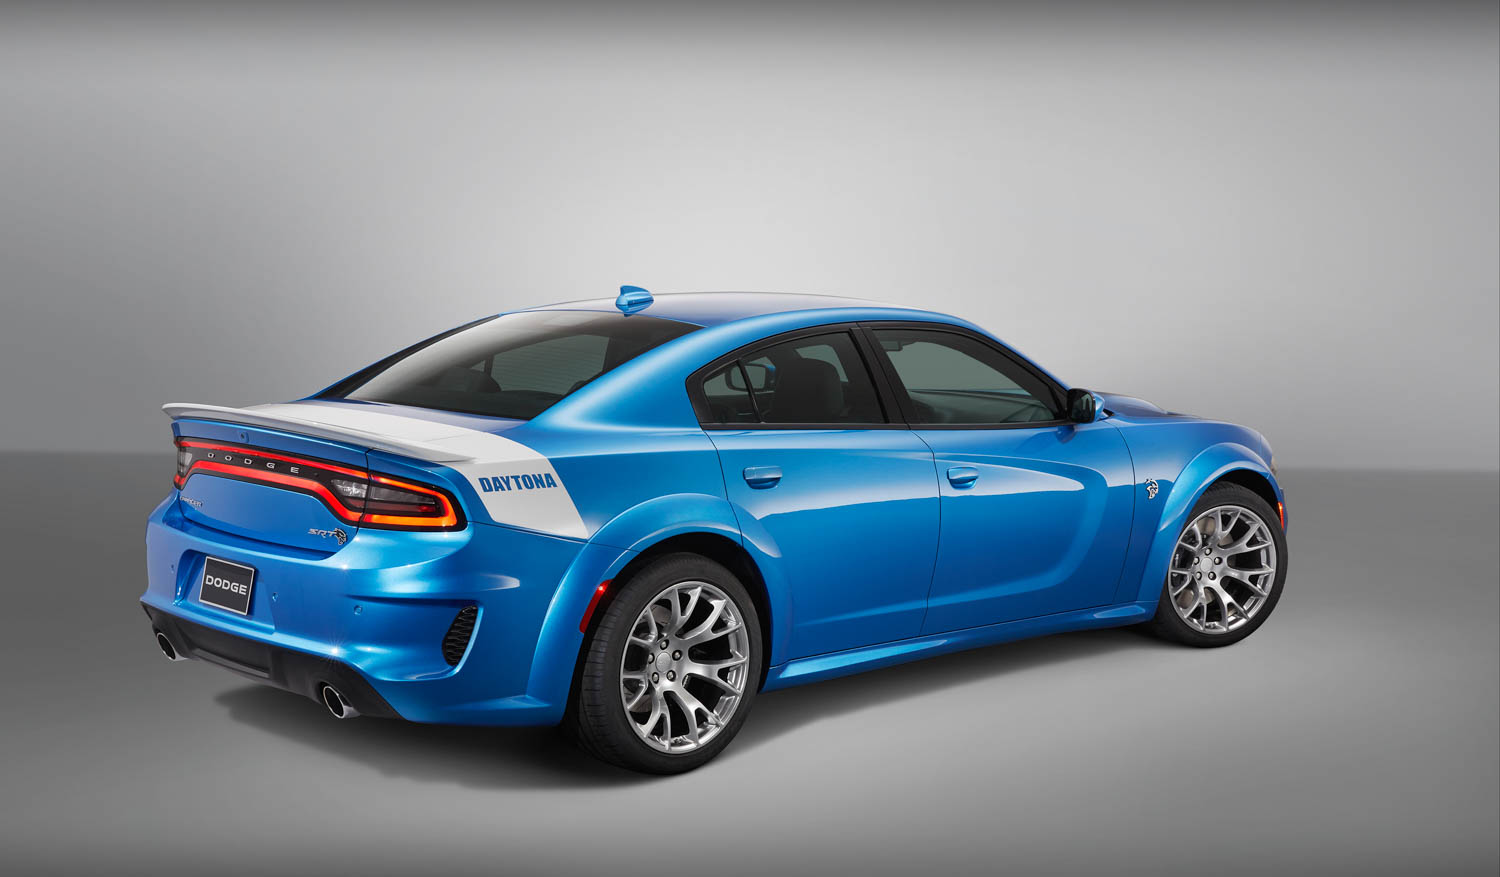 2020 Charger SRT Hellcat Widebody Daytona 50th Anniversary Edition rear 3/4